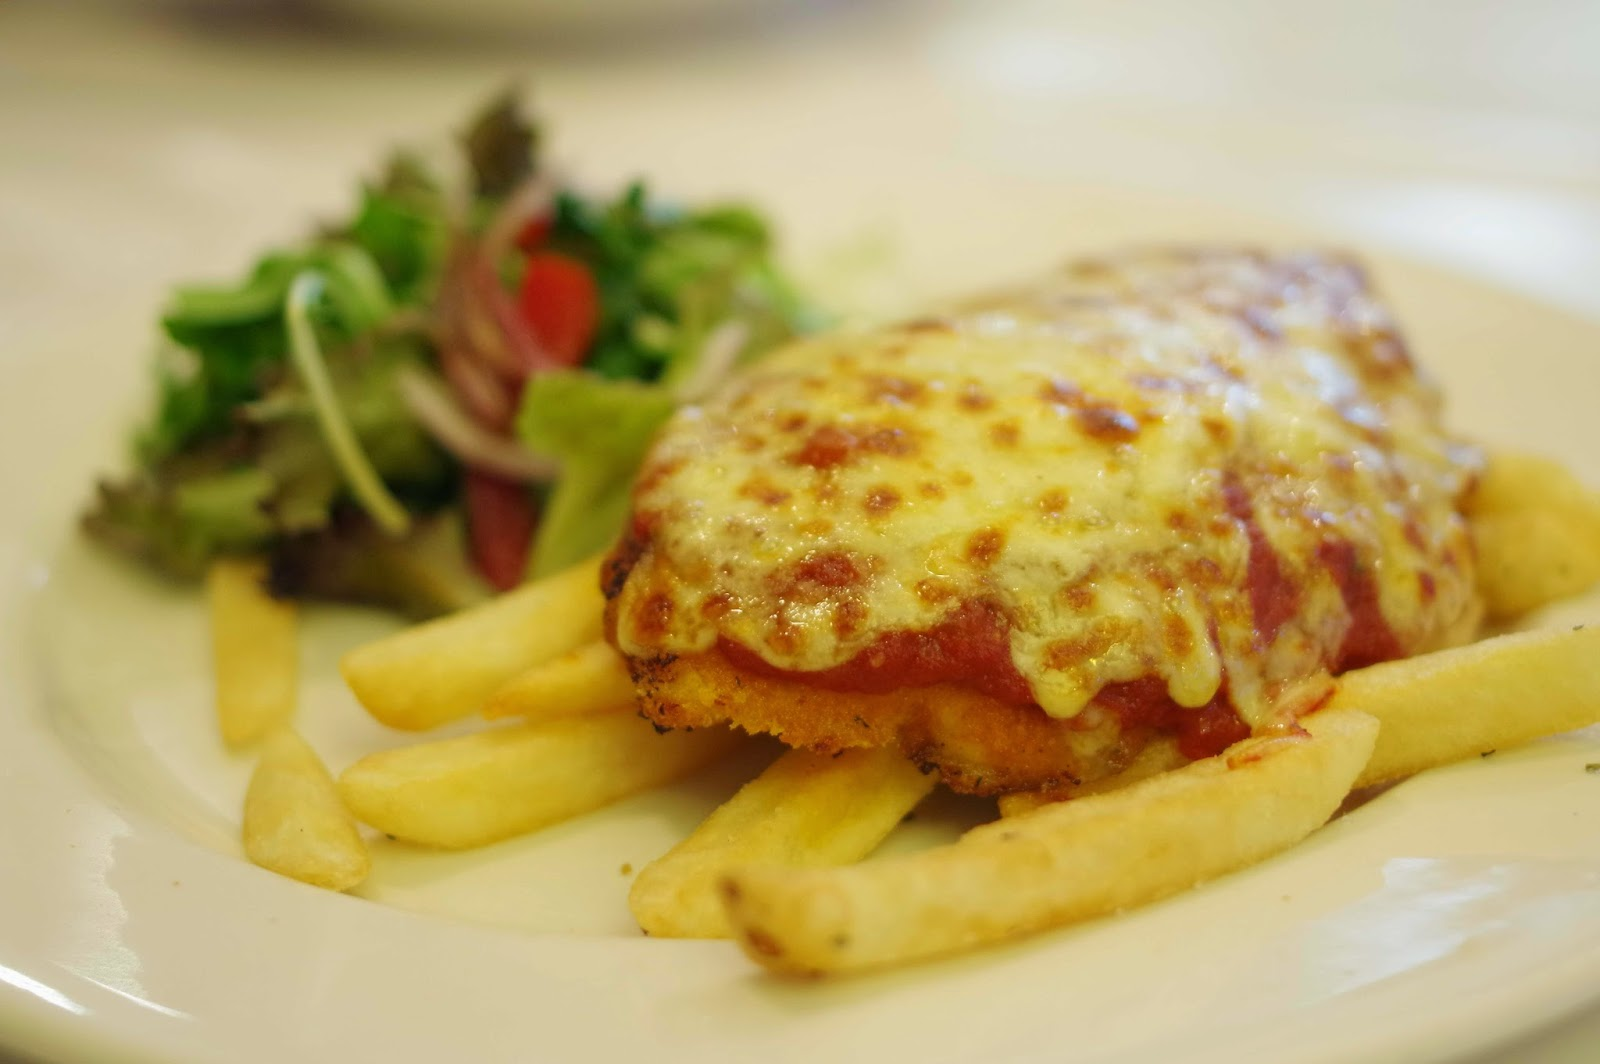 Pollo parmigiana or chicken parmigiana